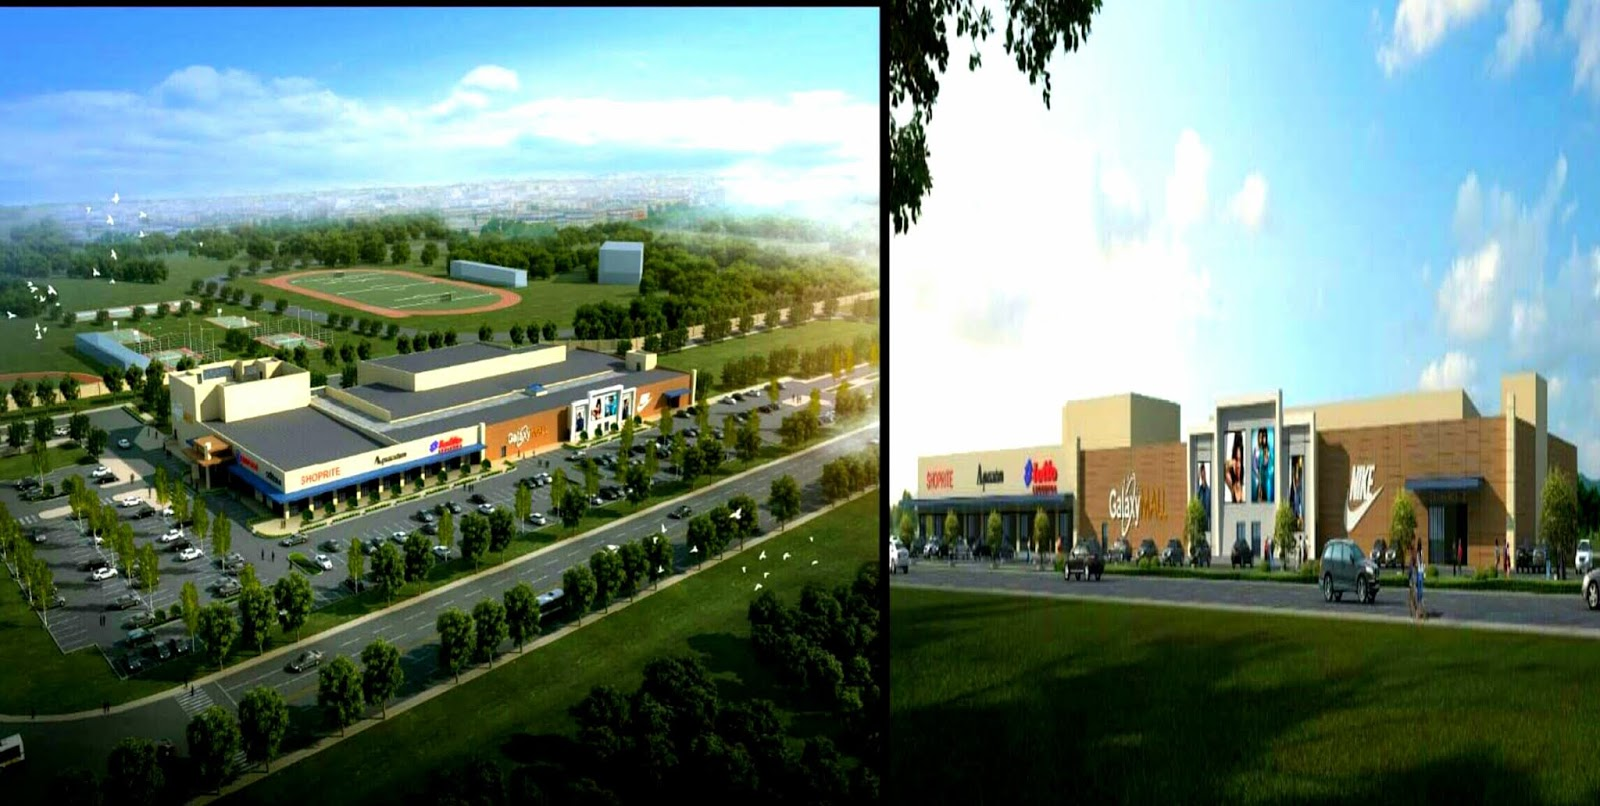 Kaduna State Government unveils Building Plan for World Class Galaxy Mall  in City Center - MadeIn Krockcity